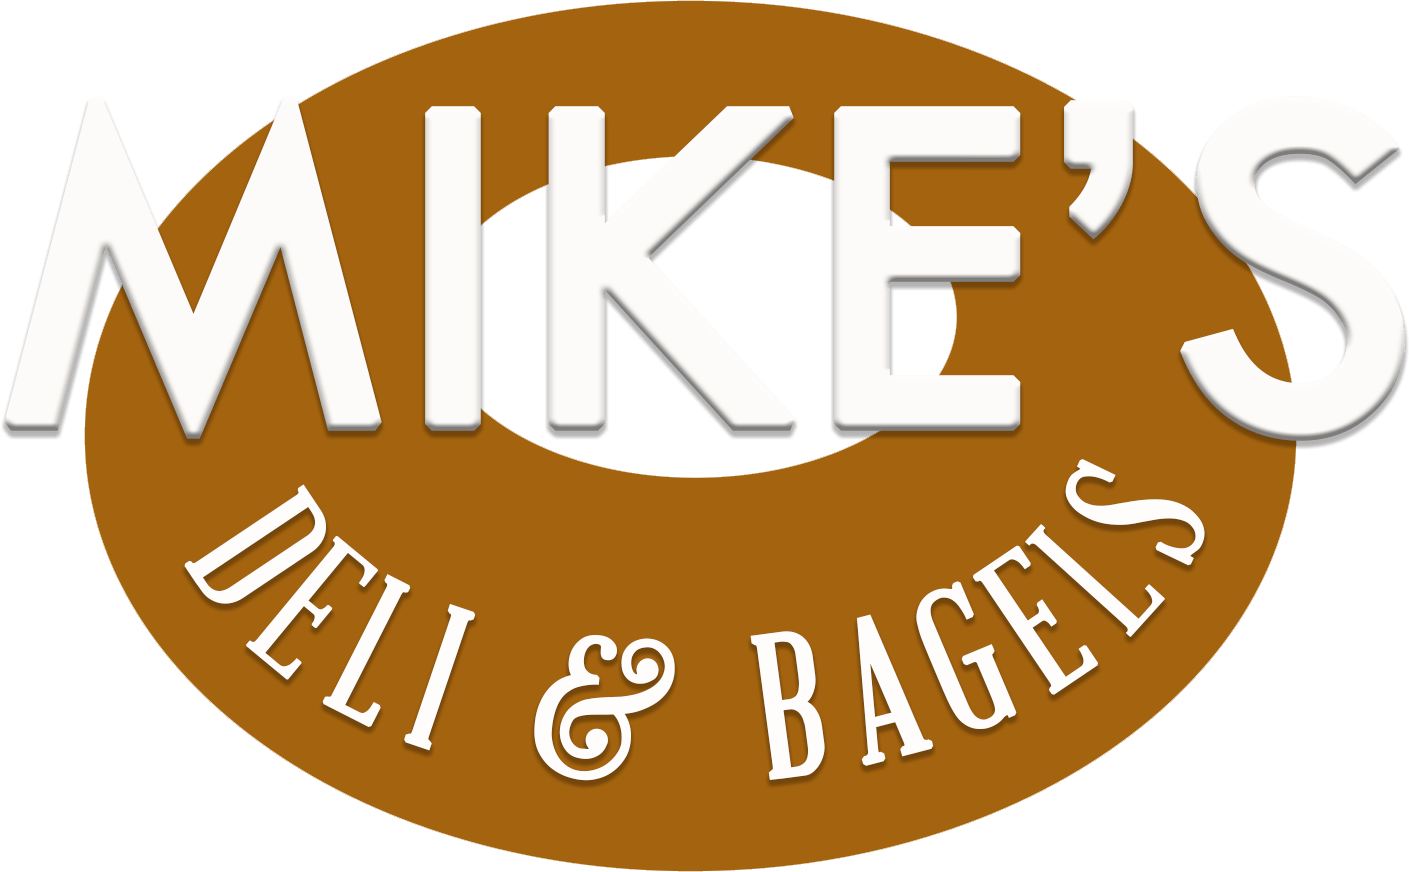 Bagel clipart yellow. Mike s deli and